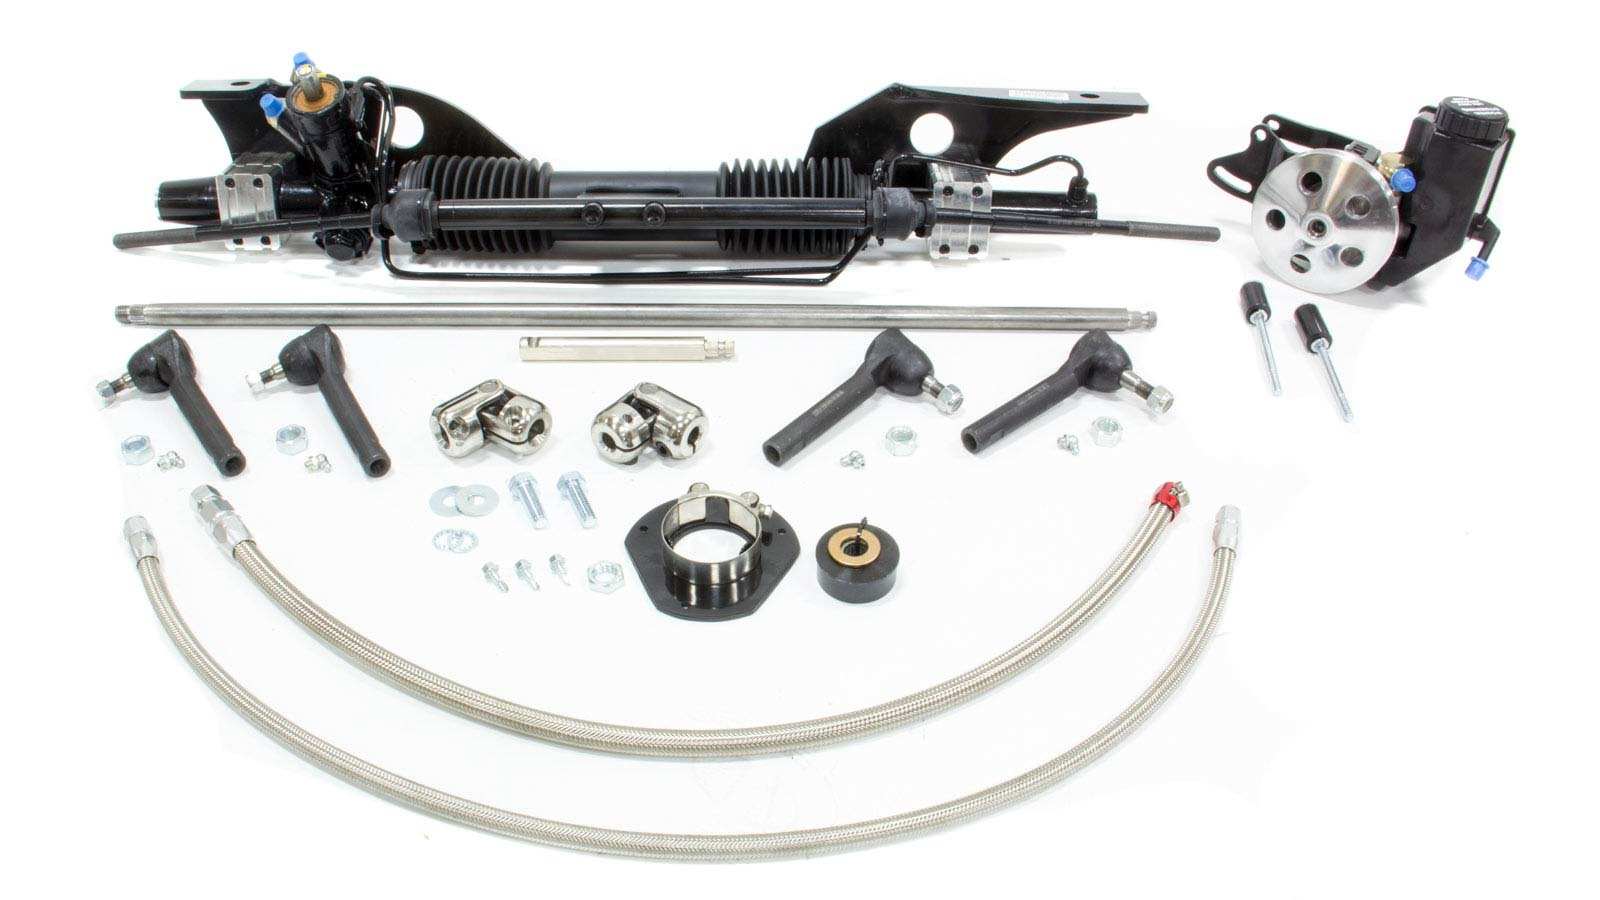 Unisteer Performance Products 8010820-01 Rack and Pinion, Power, Aluminum, Black Powder Coat, Early, Ford Mustang 1967, Kit